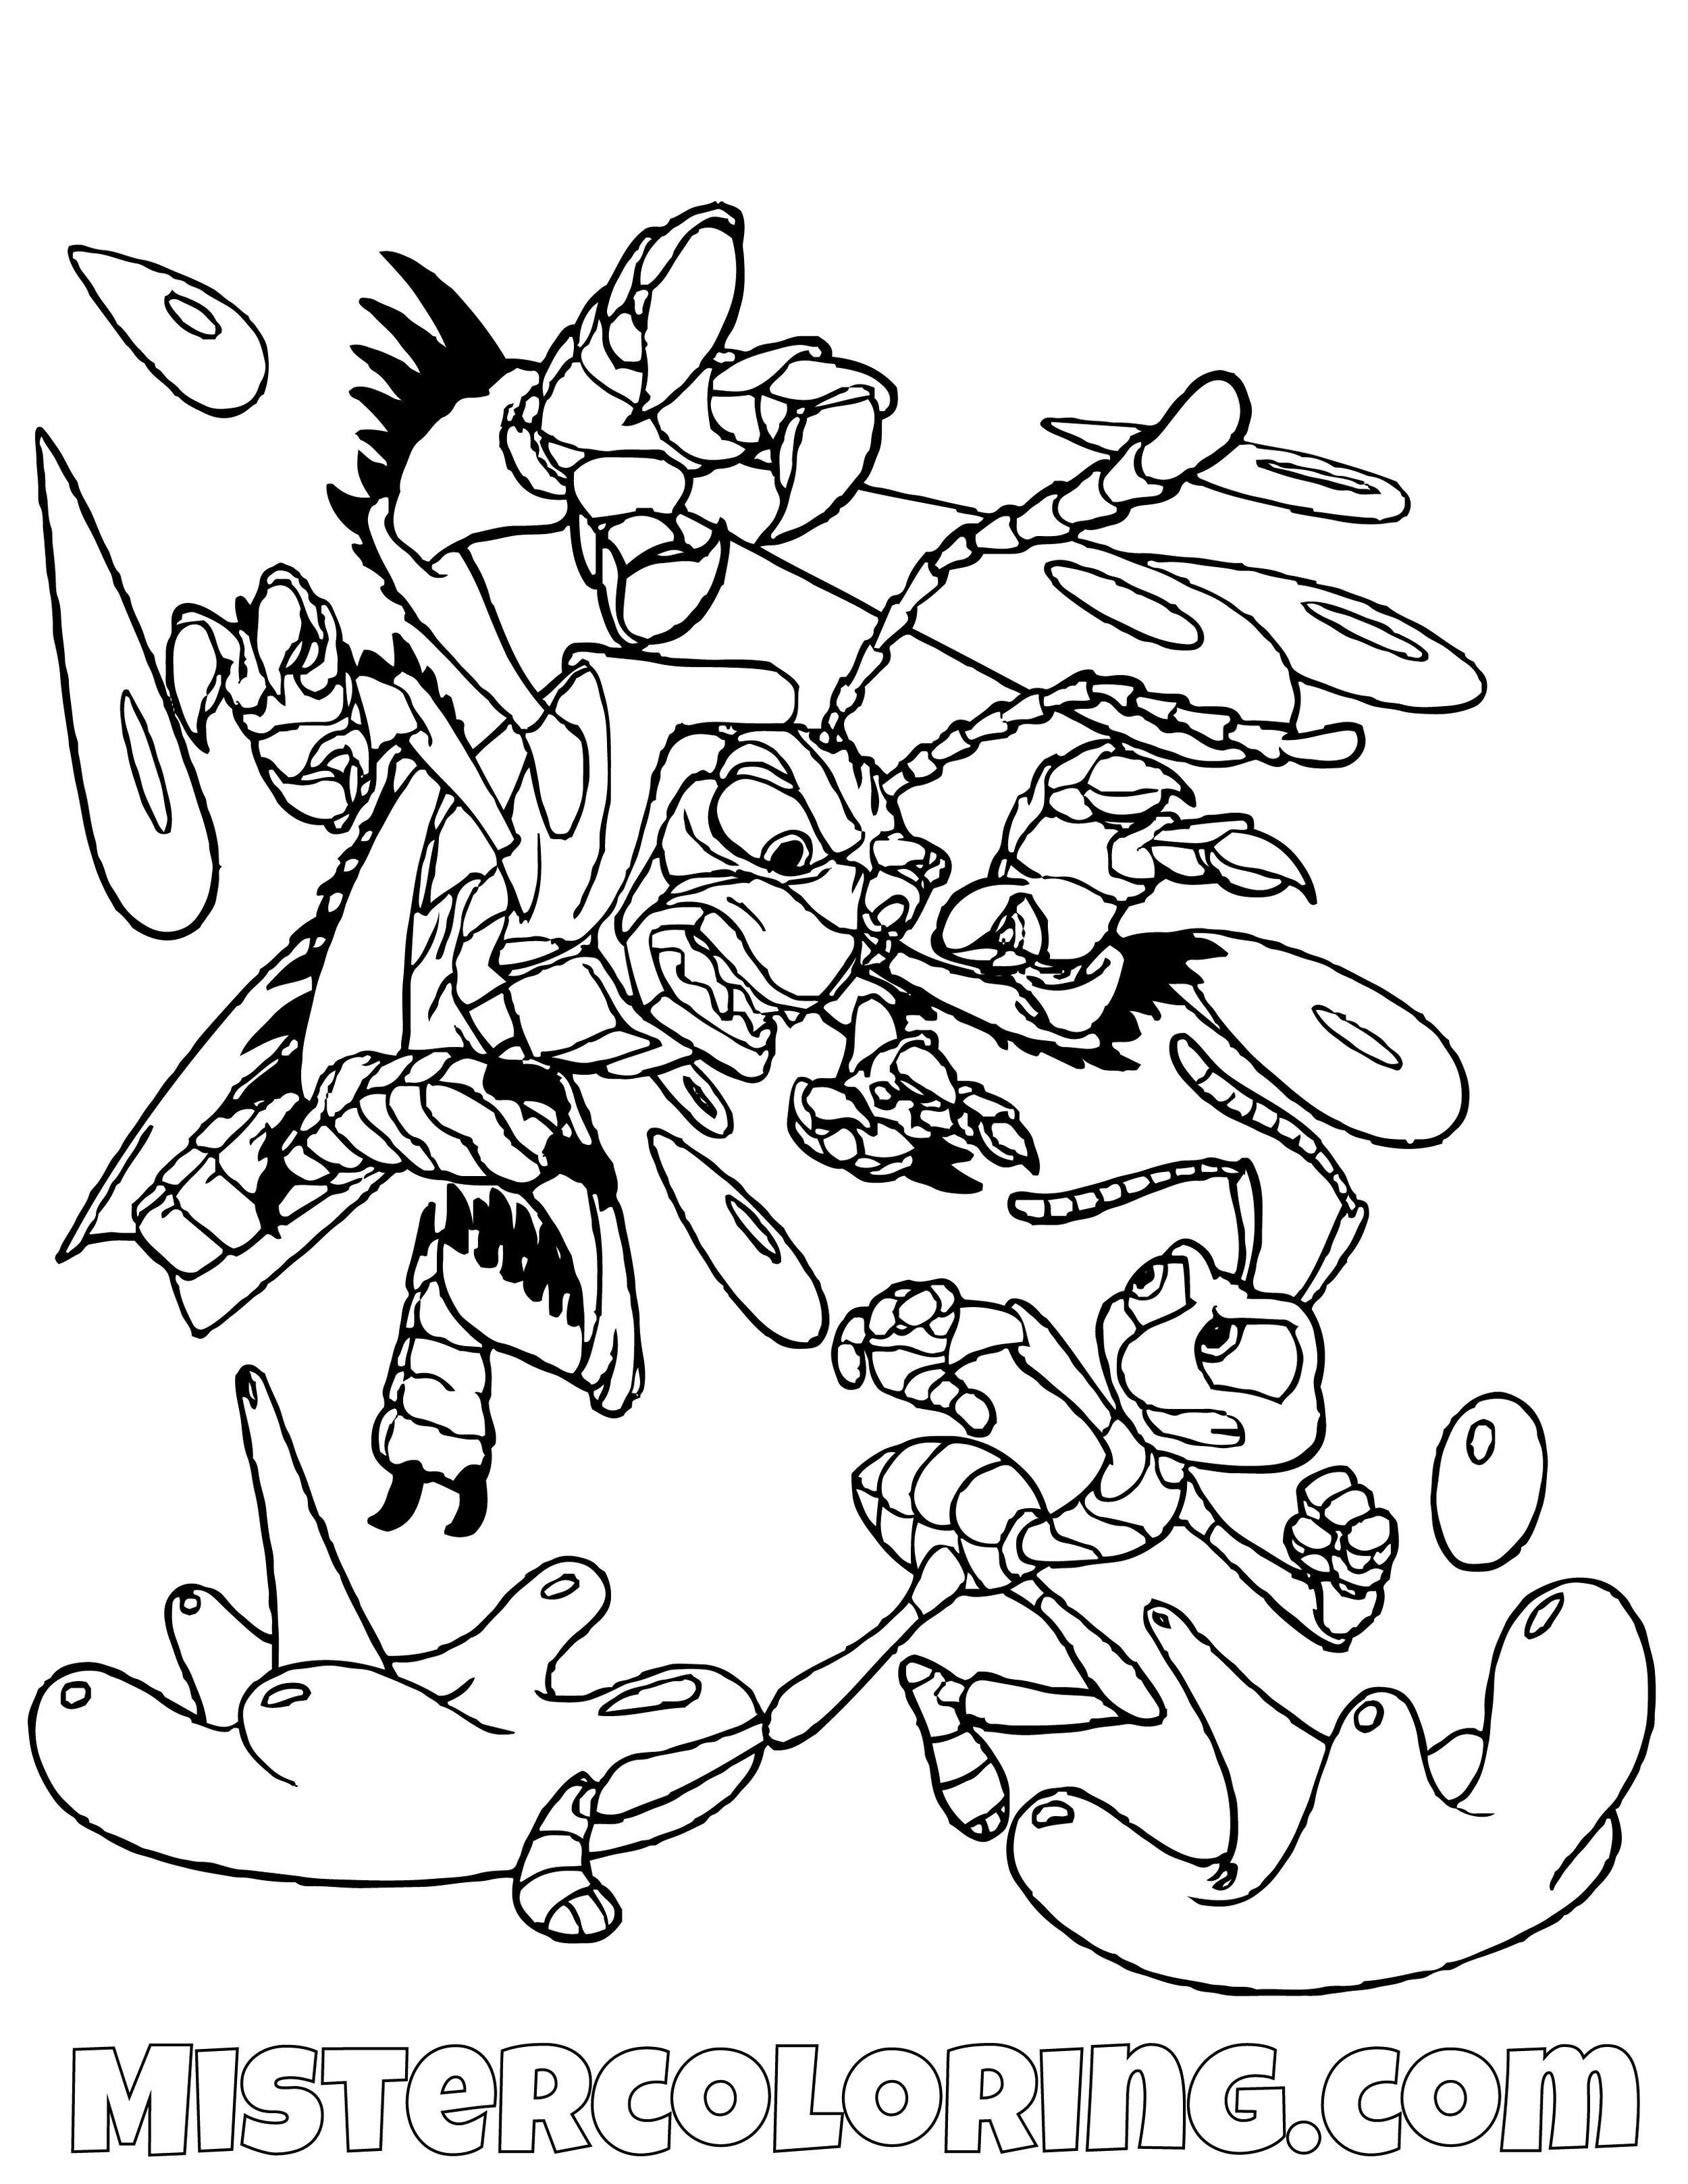 Hopper And Flick Fighting A Bugs Life Coloring Page